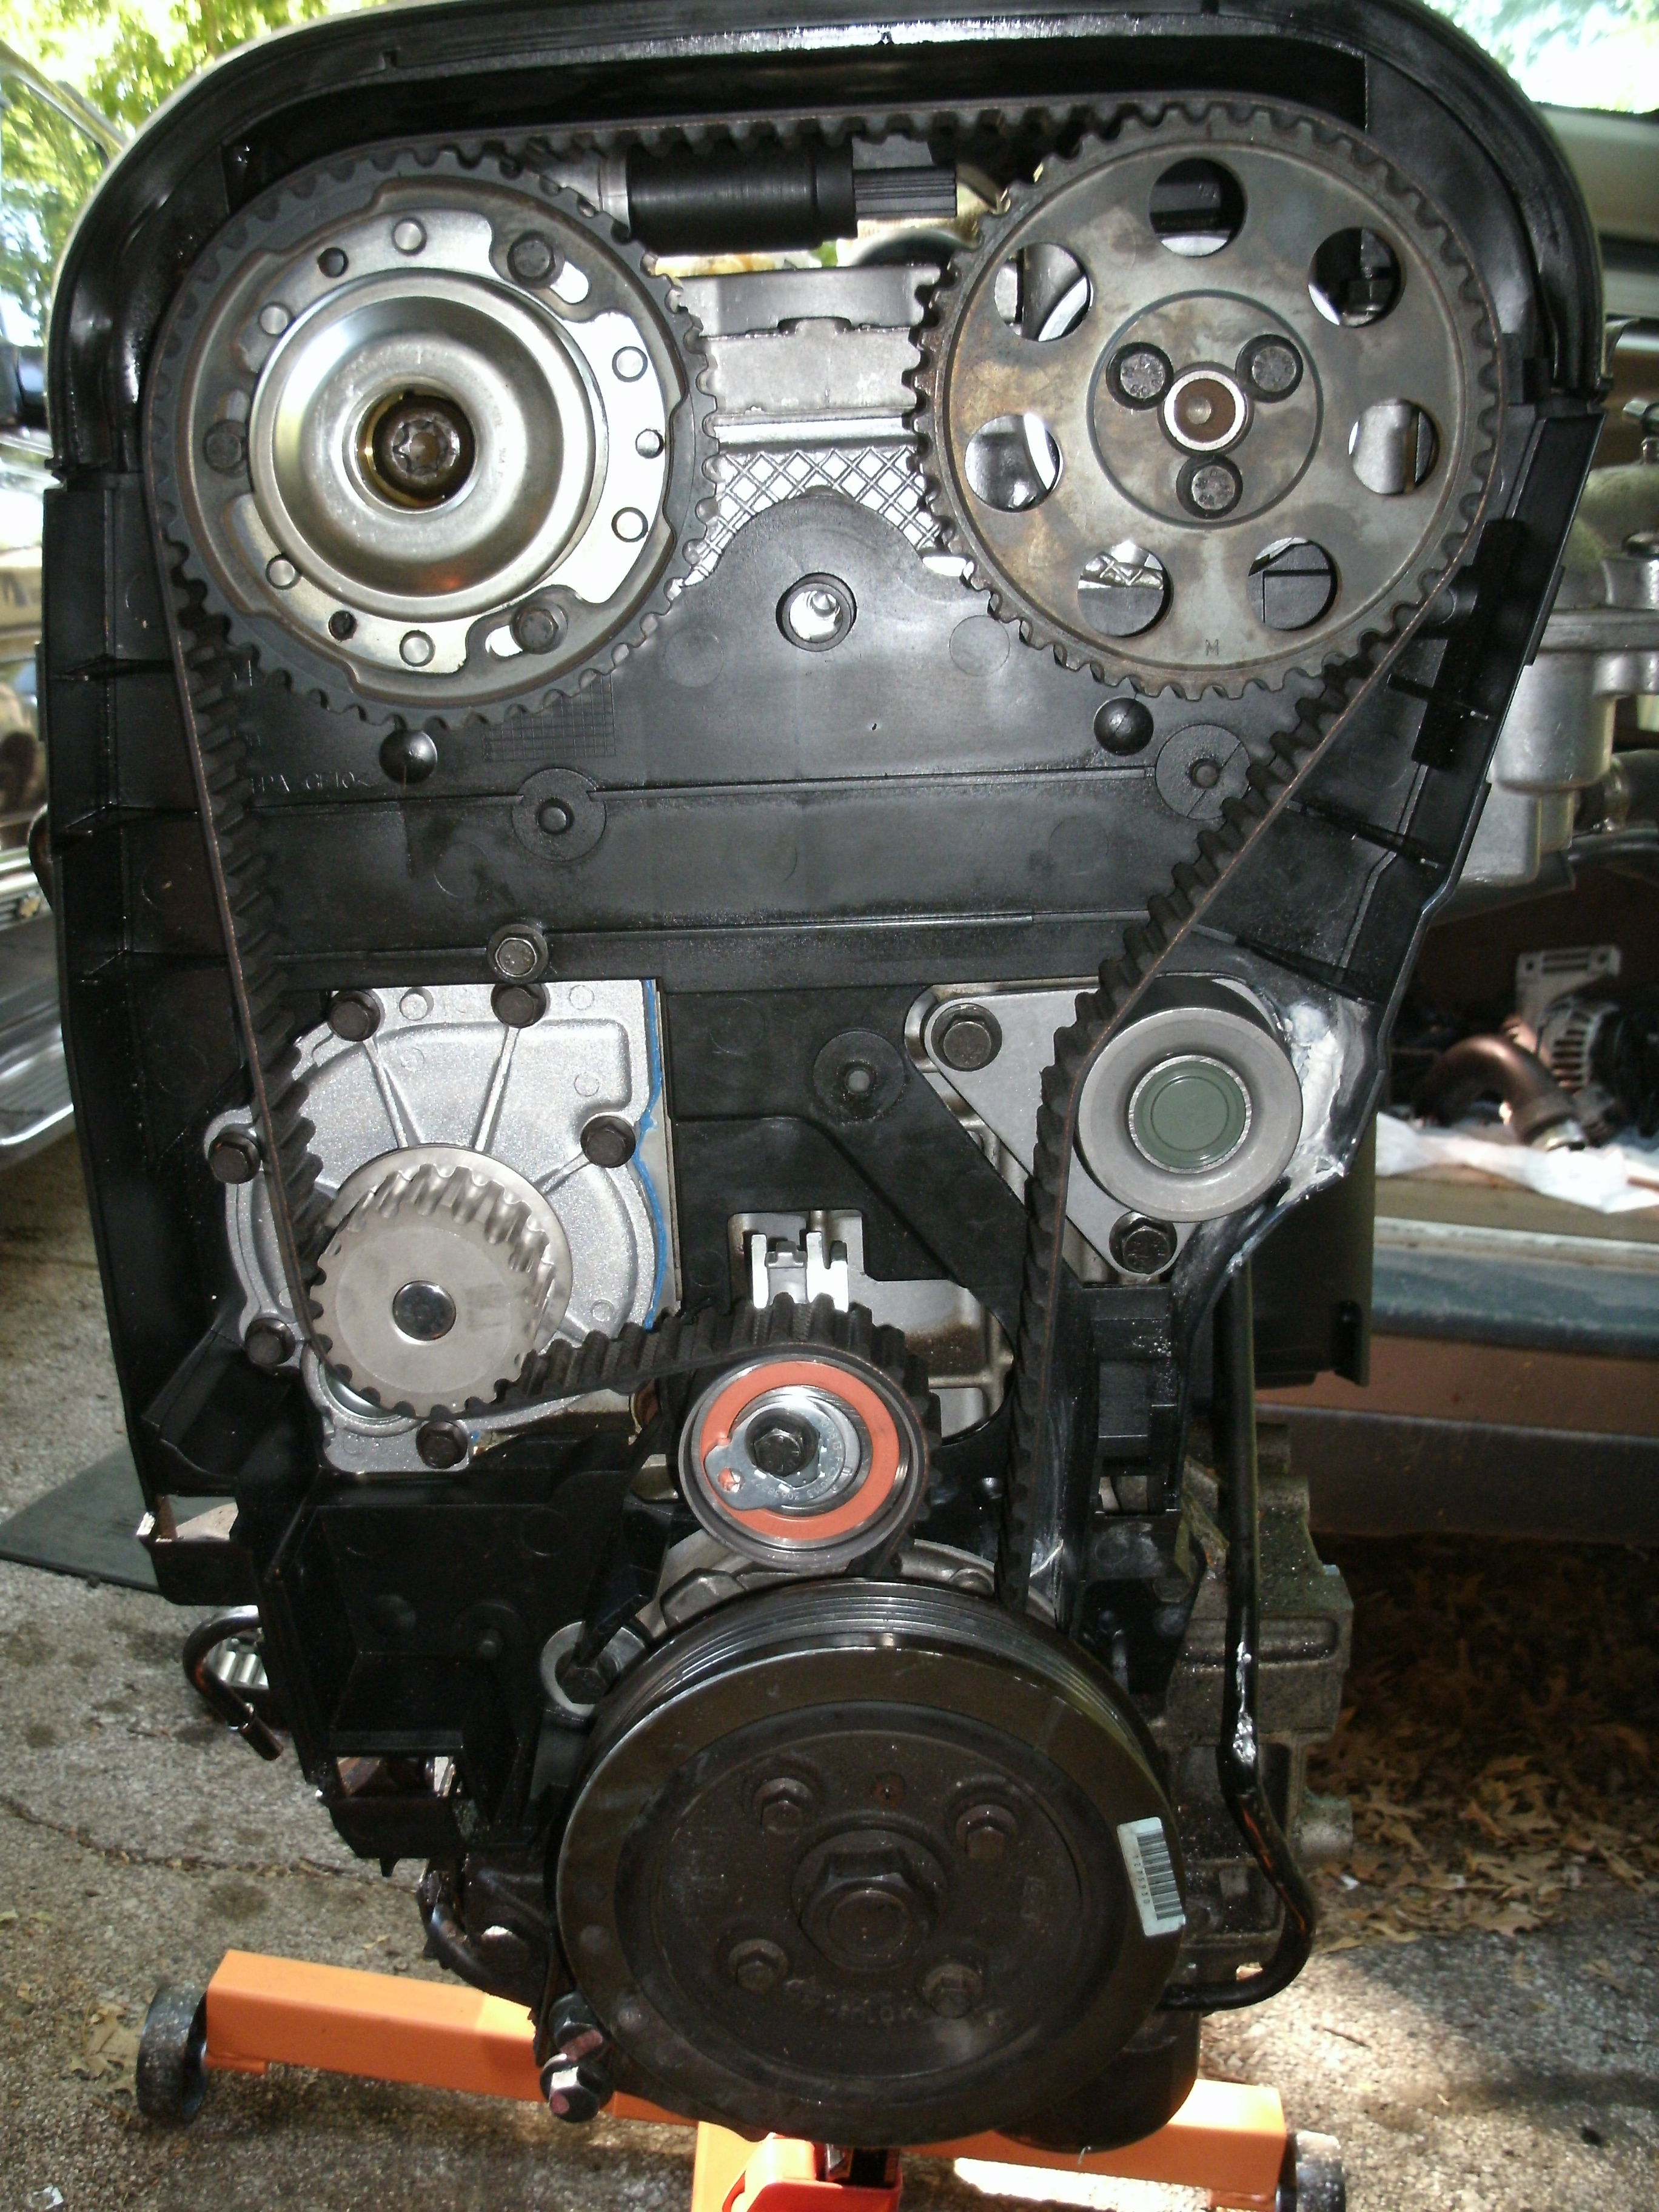 2000 S70 N/A Timing Belt Replacement Problem(s)